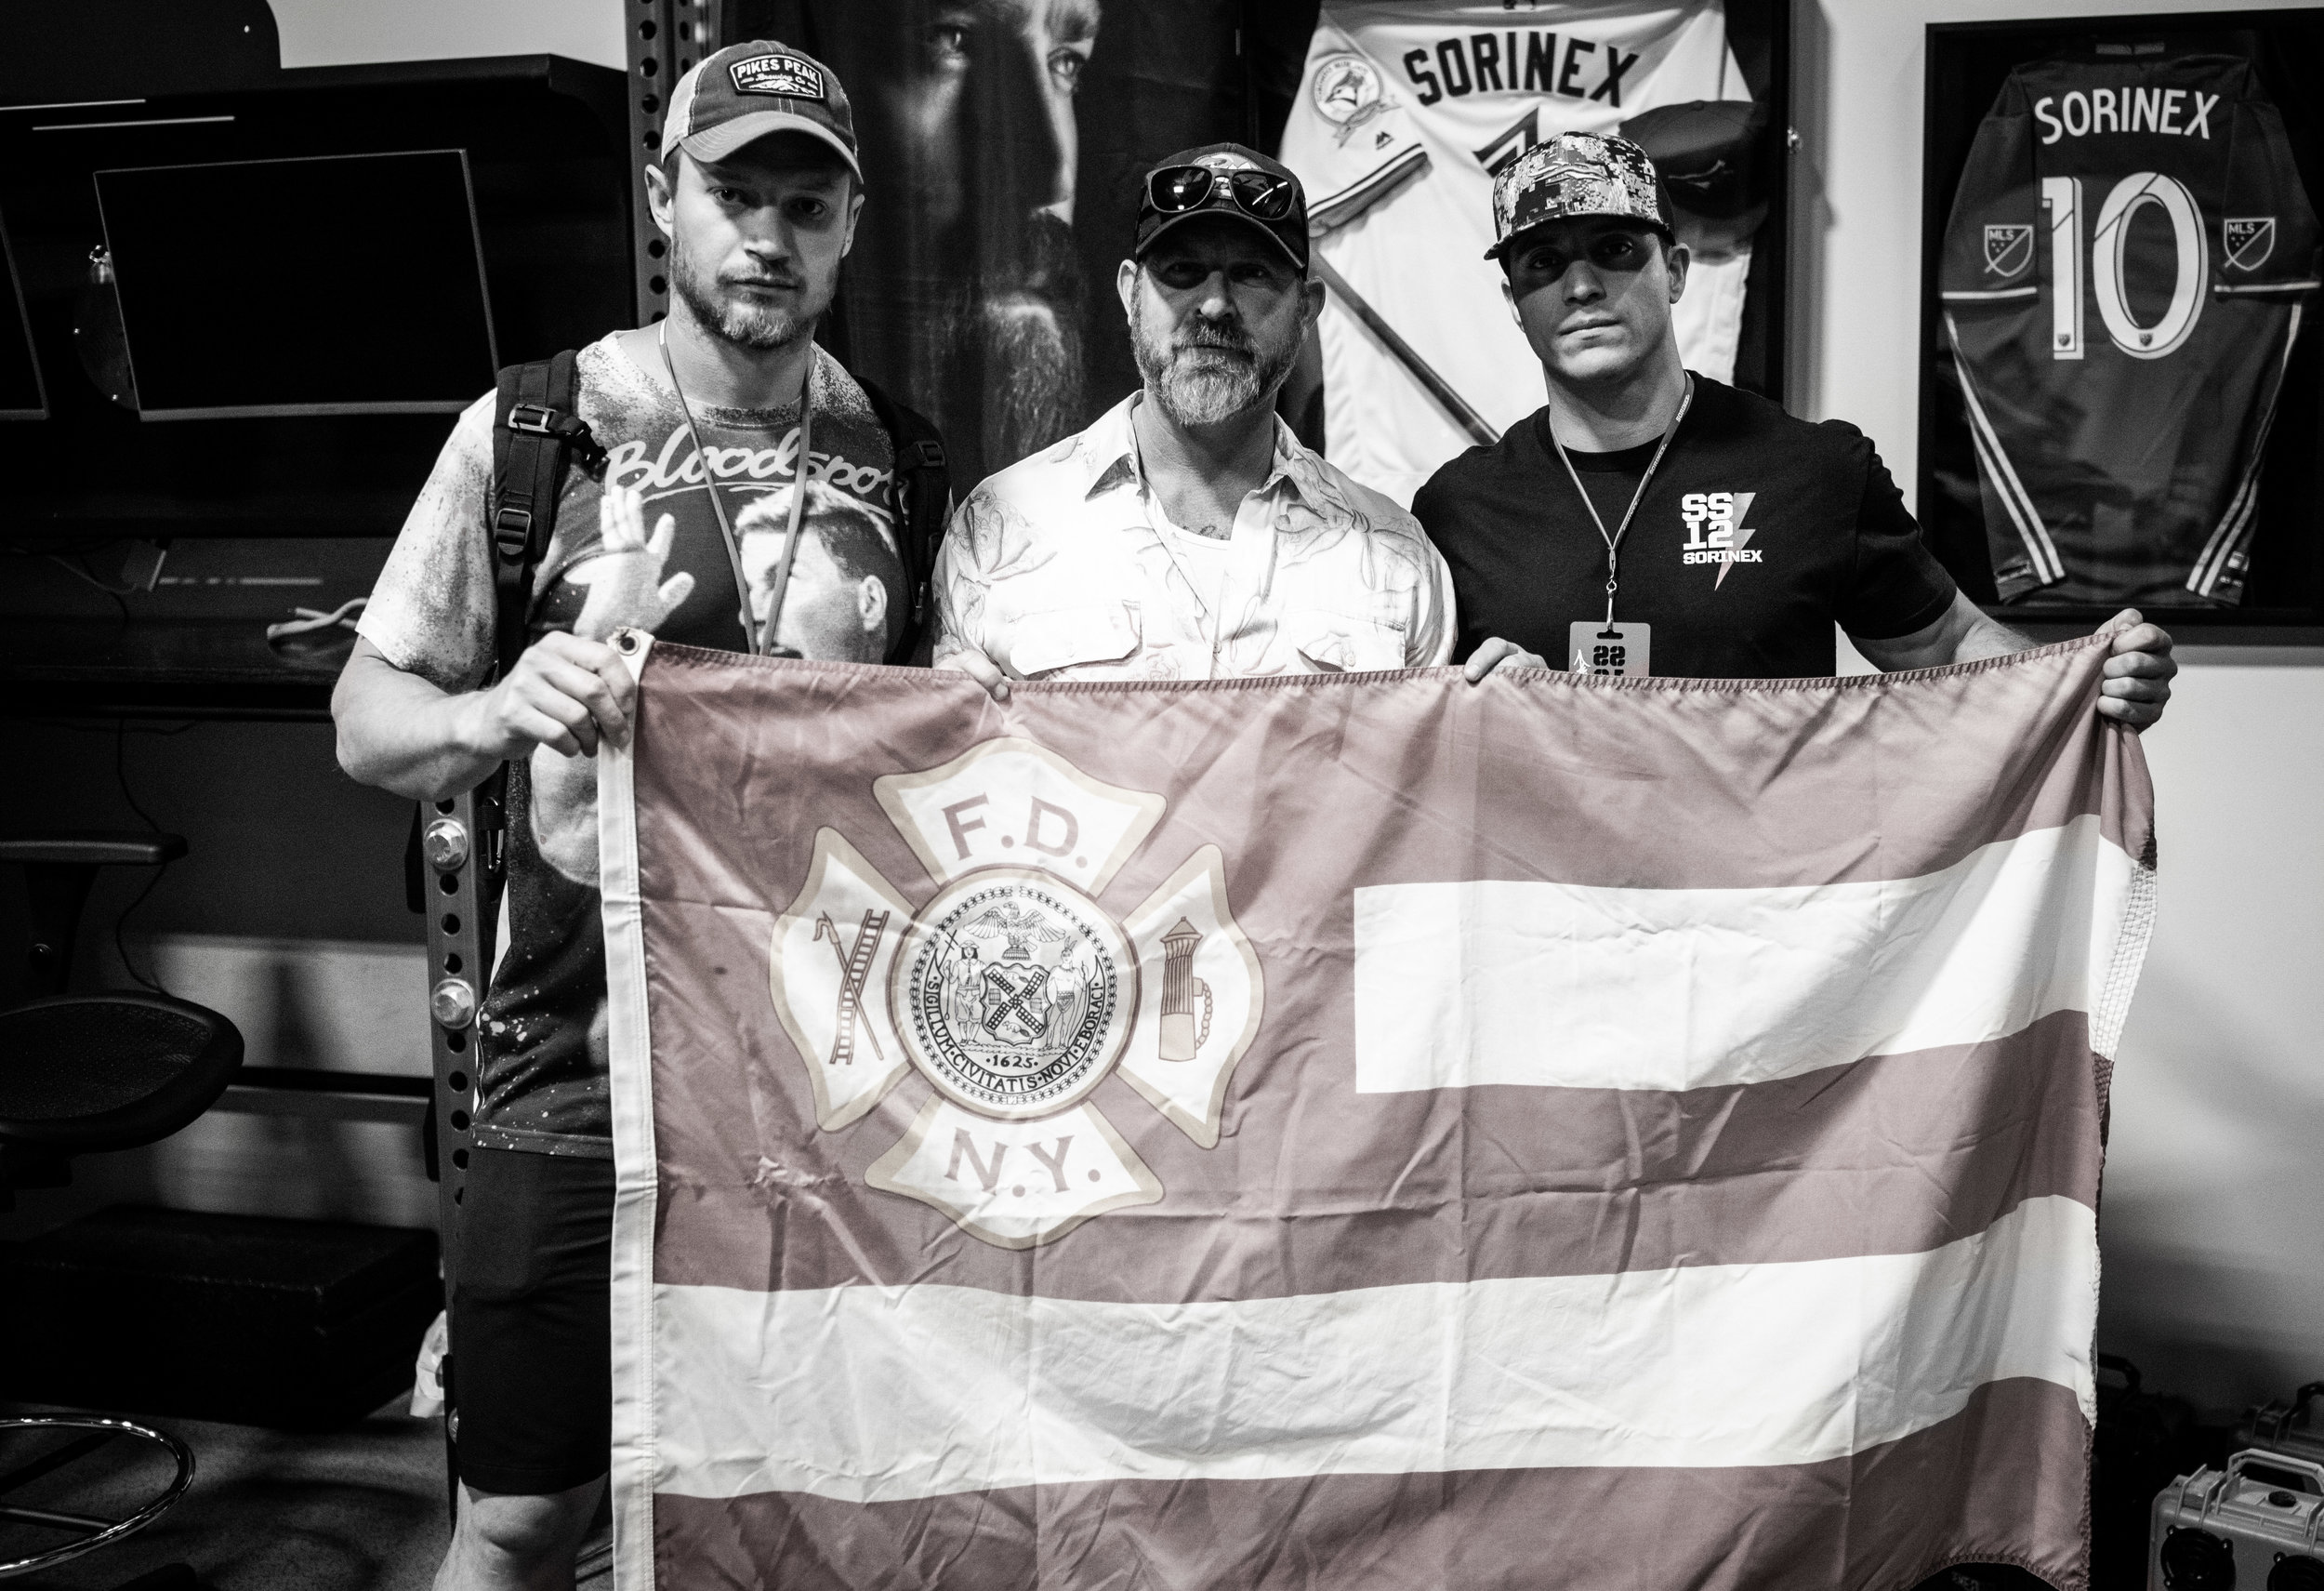 Brady stands with the FDNY Ladder 10 Flag owned by his friend, Duncan Butler. Duncan is the Business Development Specialist for Zac Brown Band.